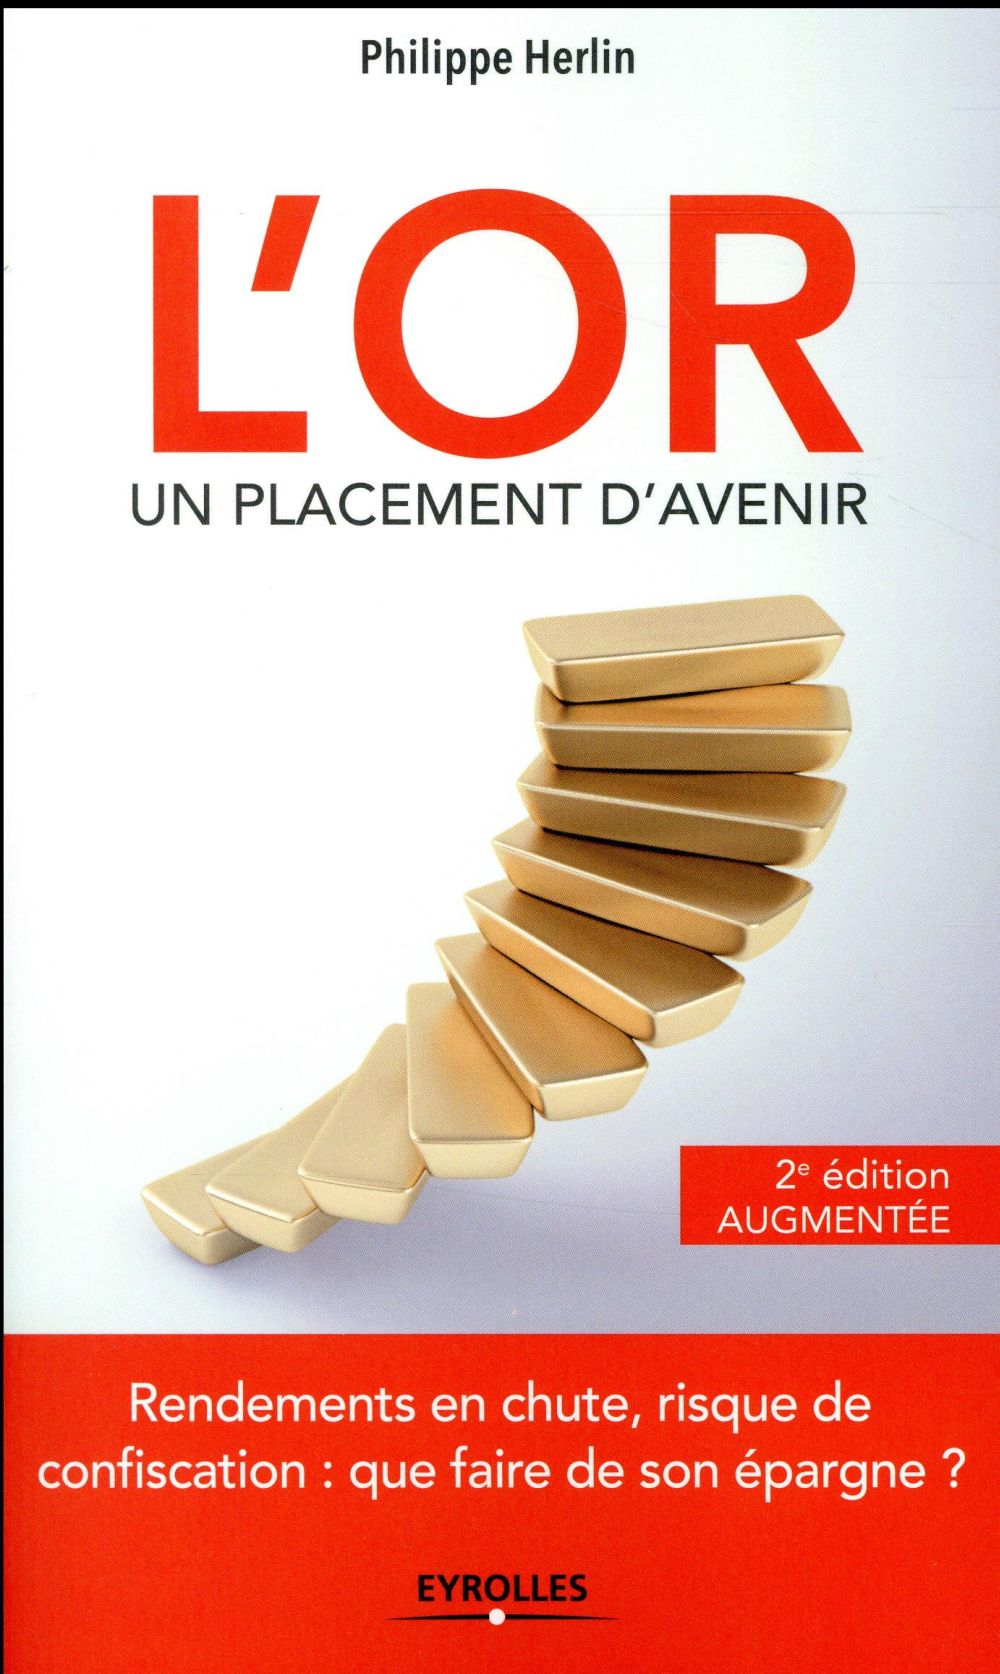 L'or, un placement d'avenir ; rendements en chute, risque de confiscation : que faire de son épargne ? (2e édition)